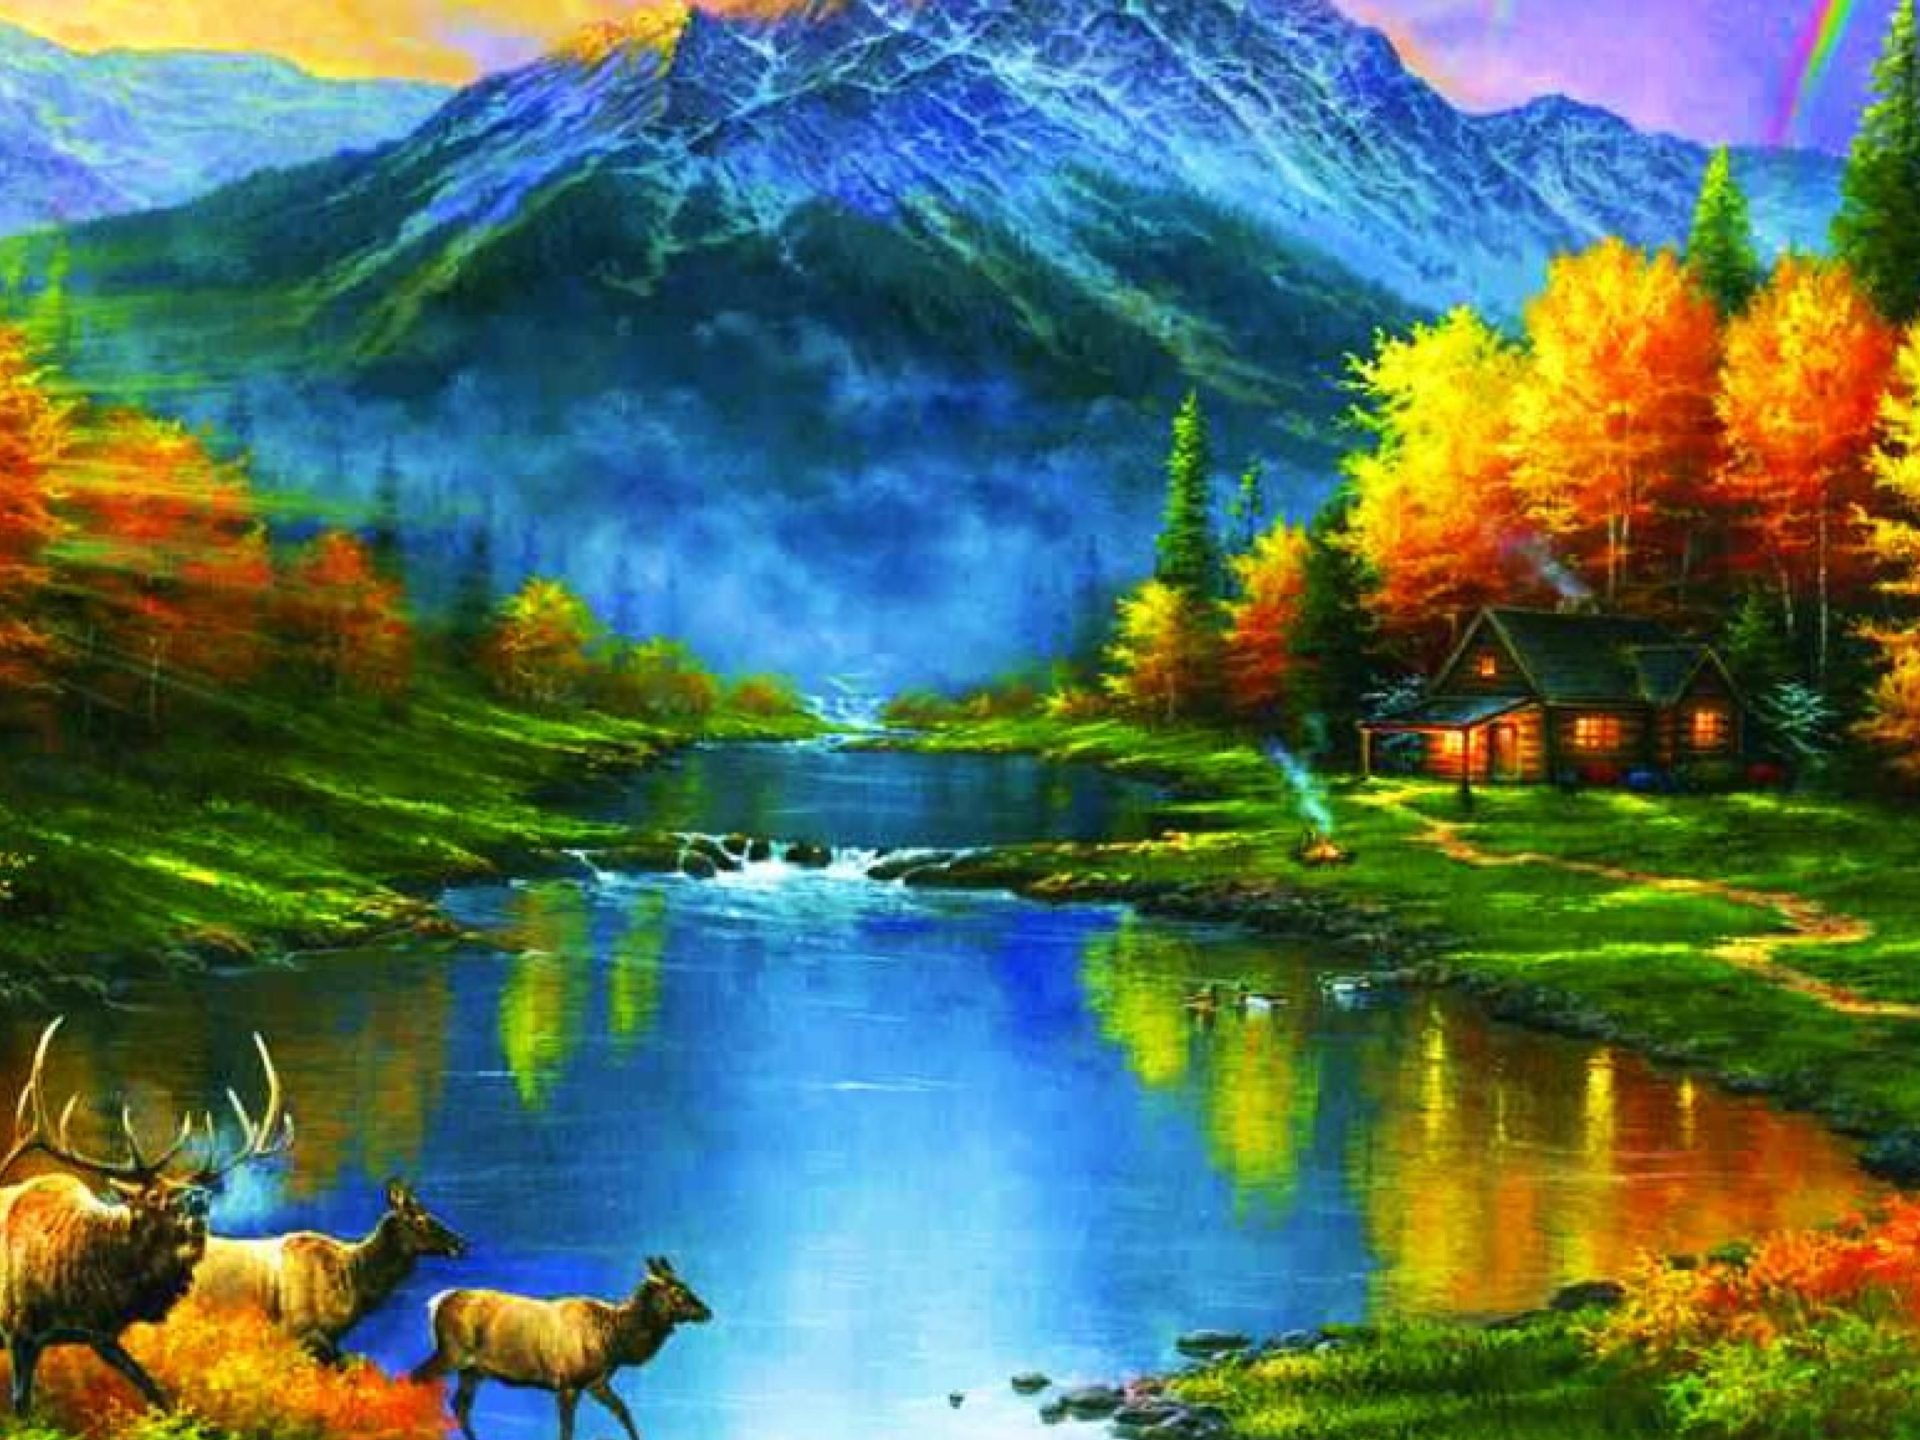 Fall Scenery Iphone Wallpaper Mountains At Fall Trees Leaves Lakes Colors Ultra Hd